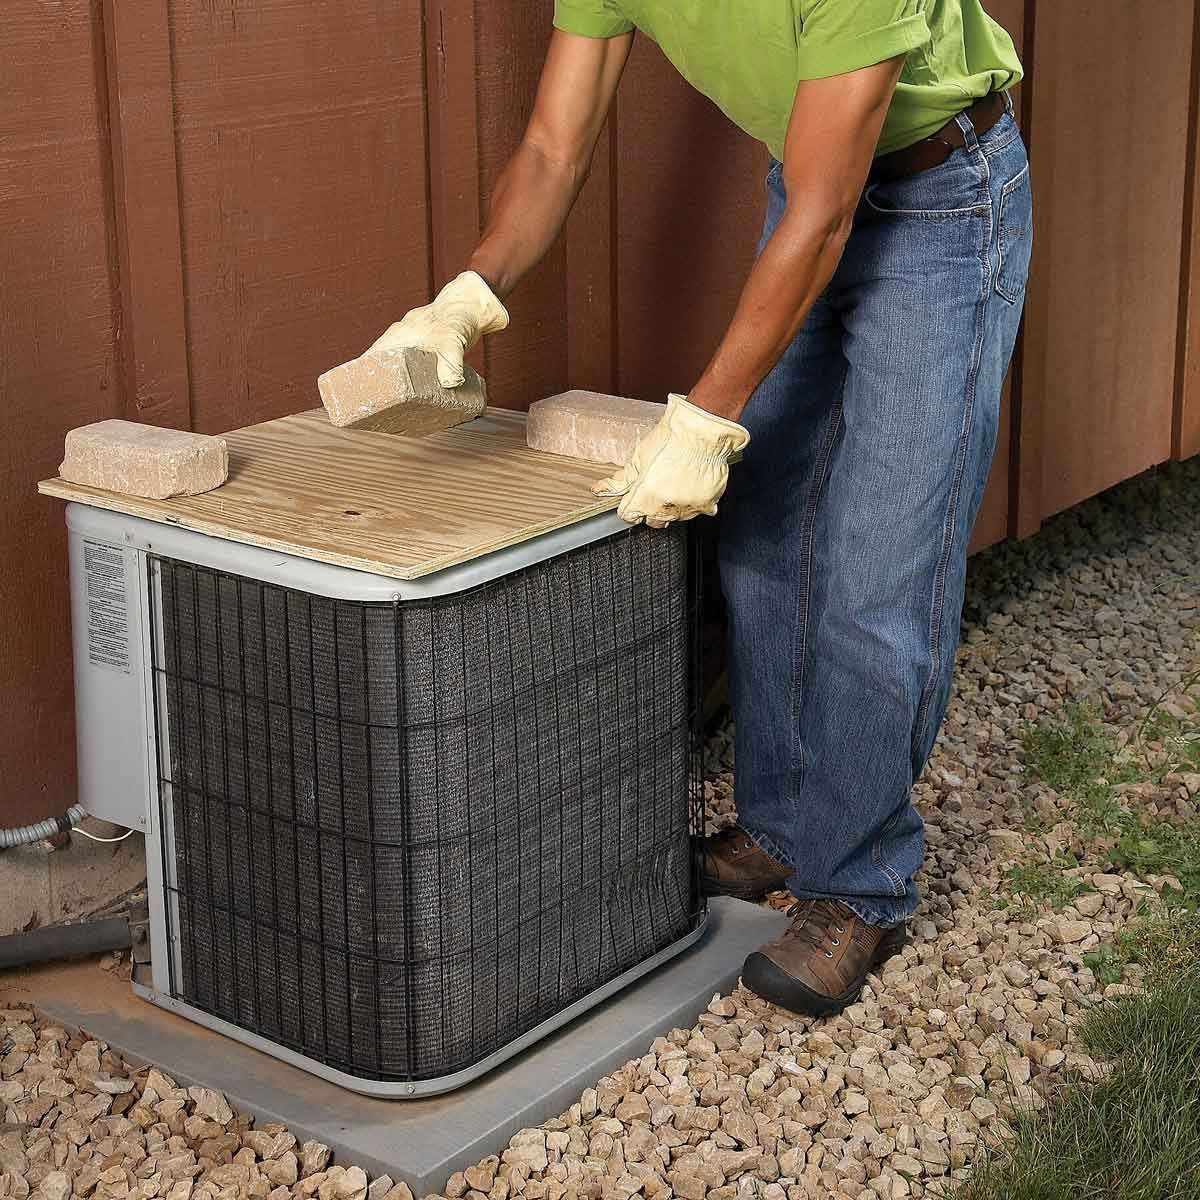 Covering Your Air Conditioner Condenser Unit in 2020